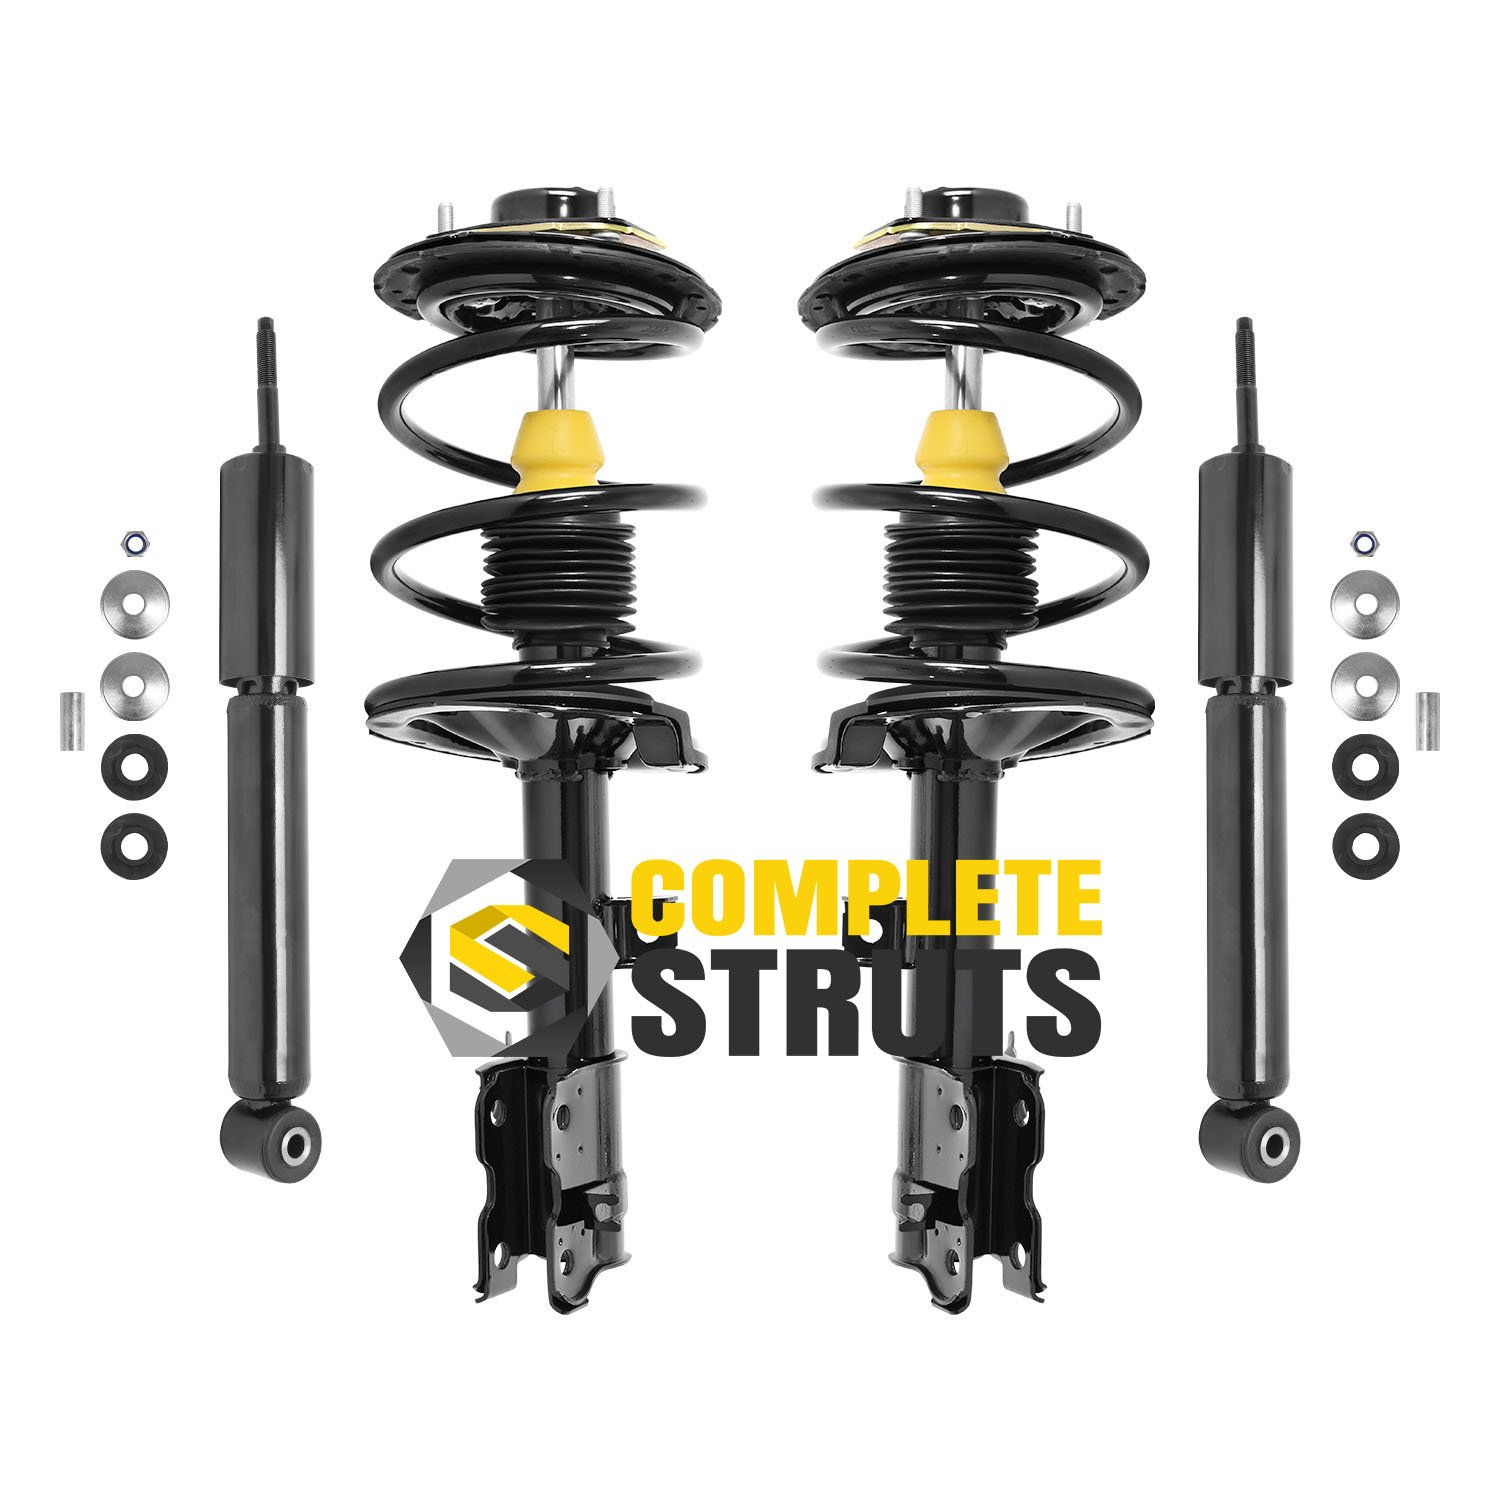 For Nissan Murano 2003-2007 Front Complete Coil Spring Struts Absorbers Assembly